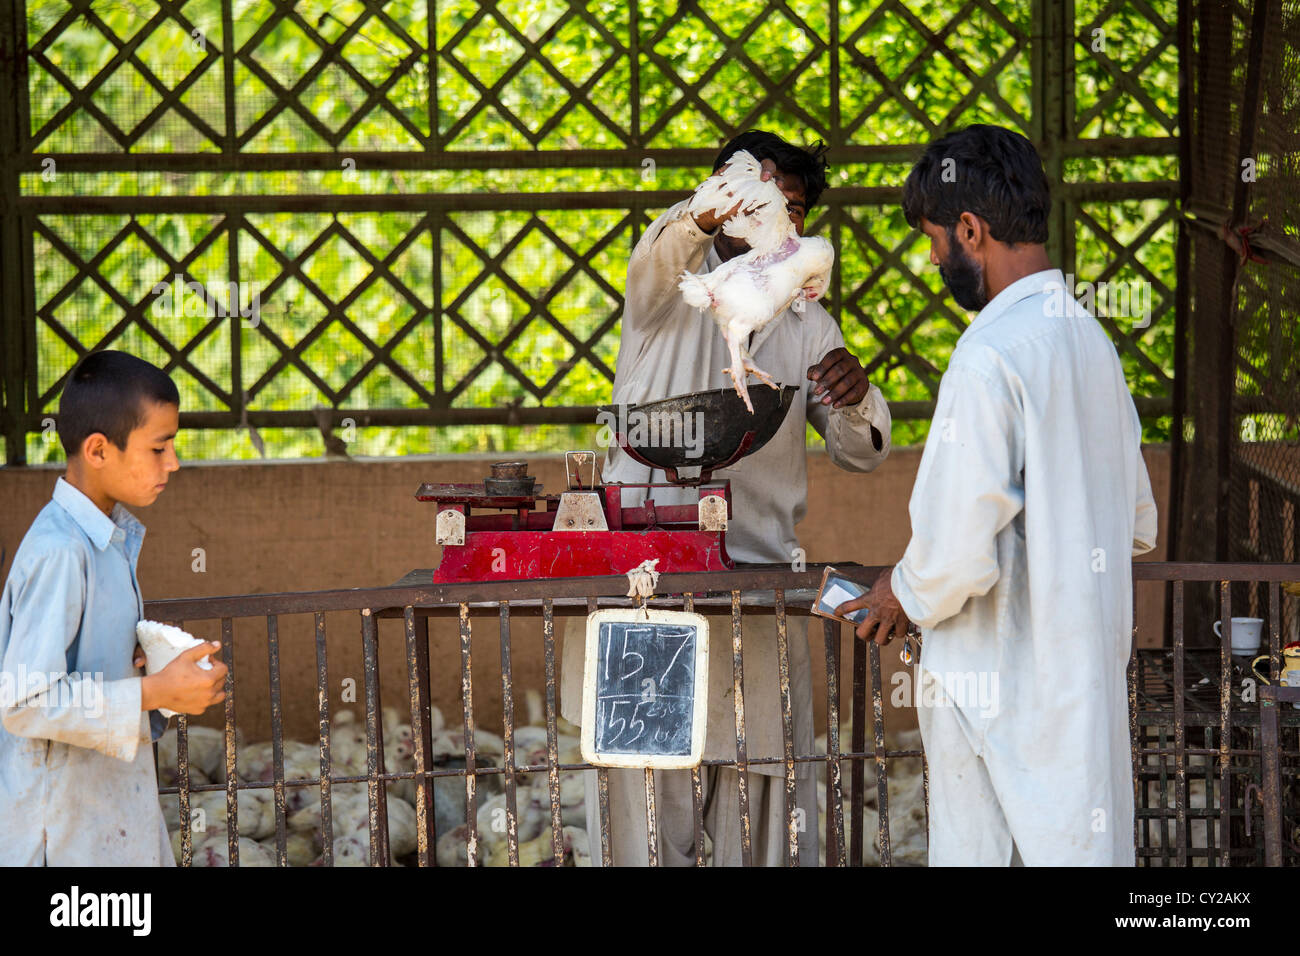 Live chicken vendor, Sunday Market, Islamabad, Pakistan - Stock Image